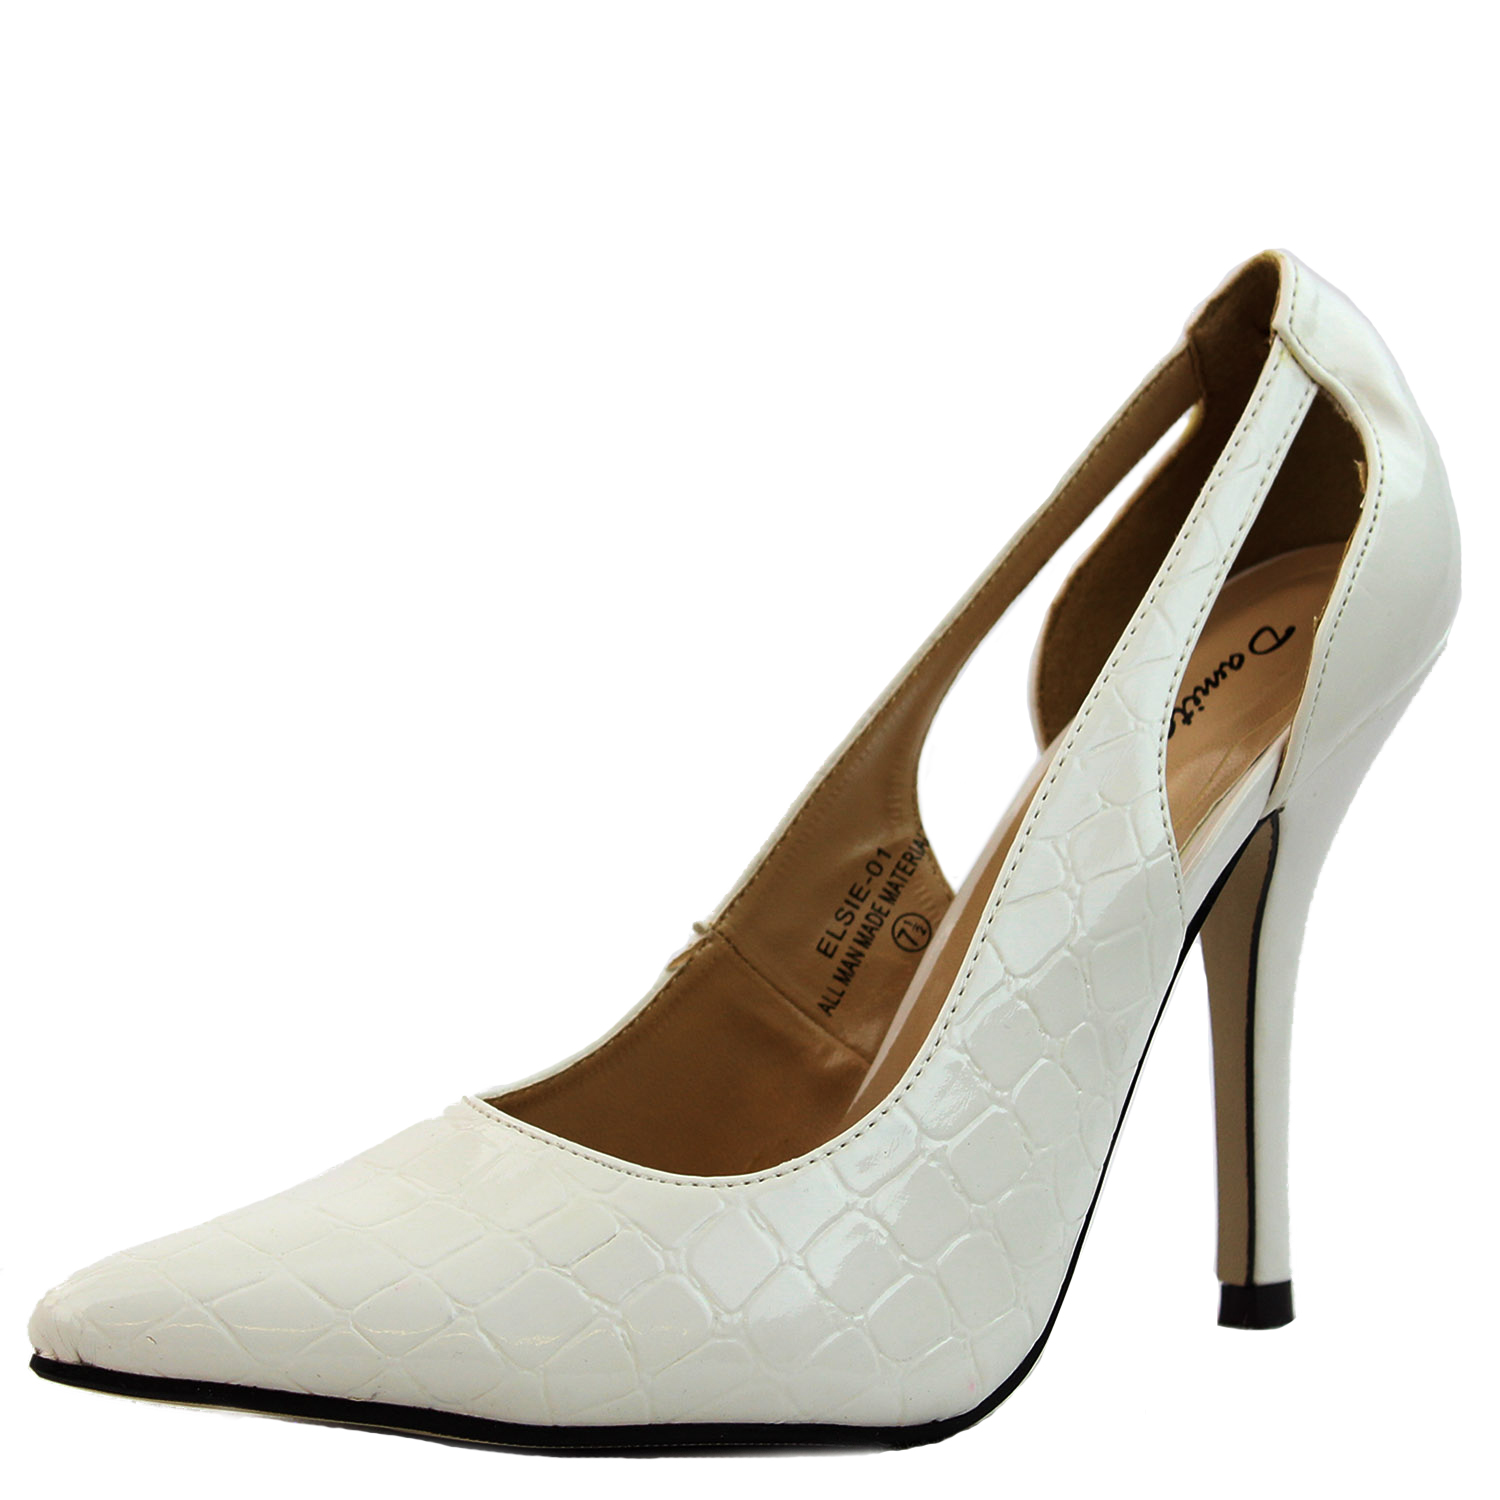 Damita K Women's Sexy Pointy Toe High Heel Pumps Half Patent Leather Slingback Wrap Ankle Office Fashion Shoes at Sears.com